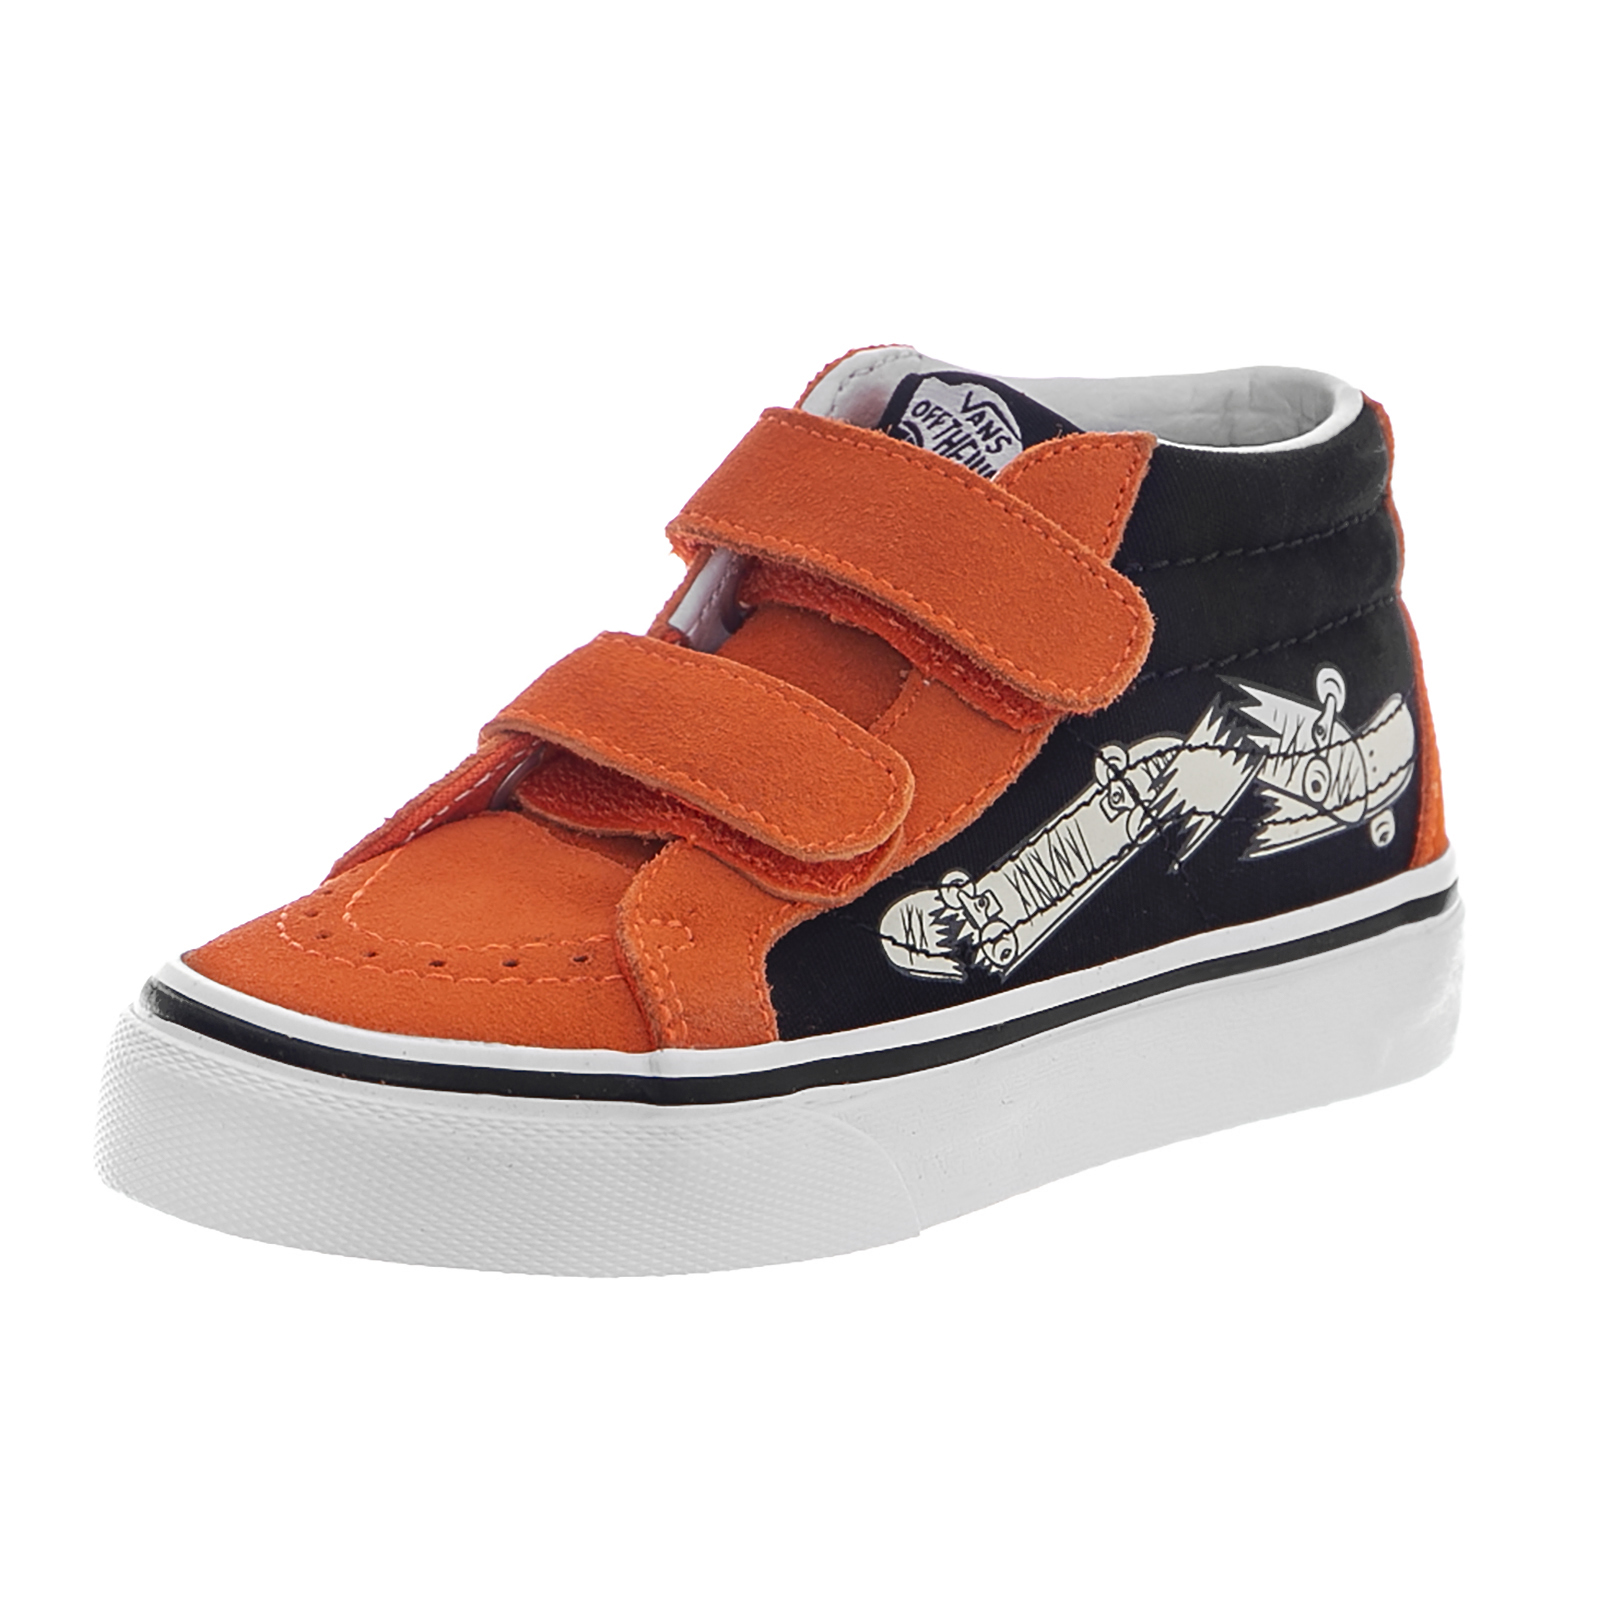 5349539221a Vans Sneakers Uy Sk8-Mid Reissue V (vans Focus) Flame Black Orange ...